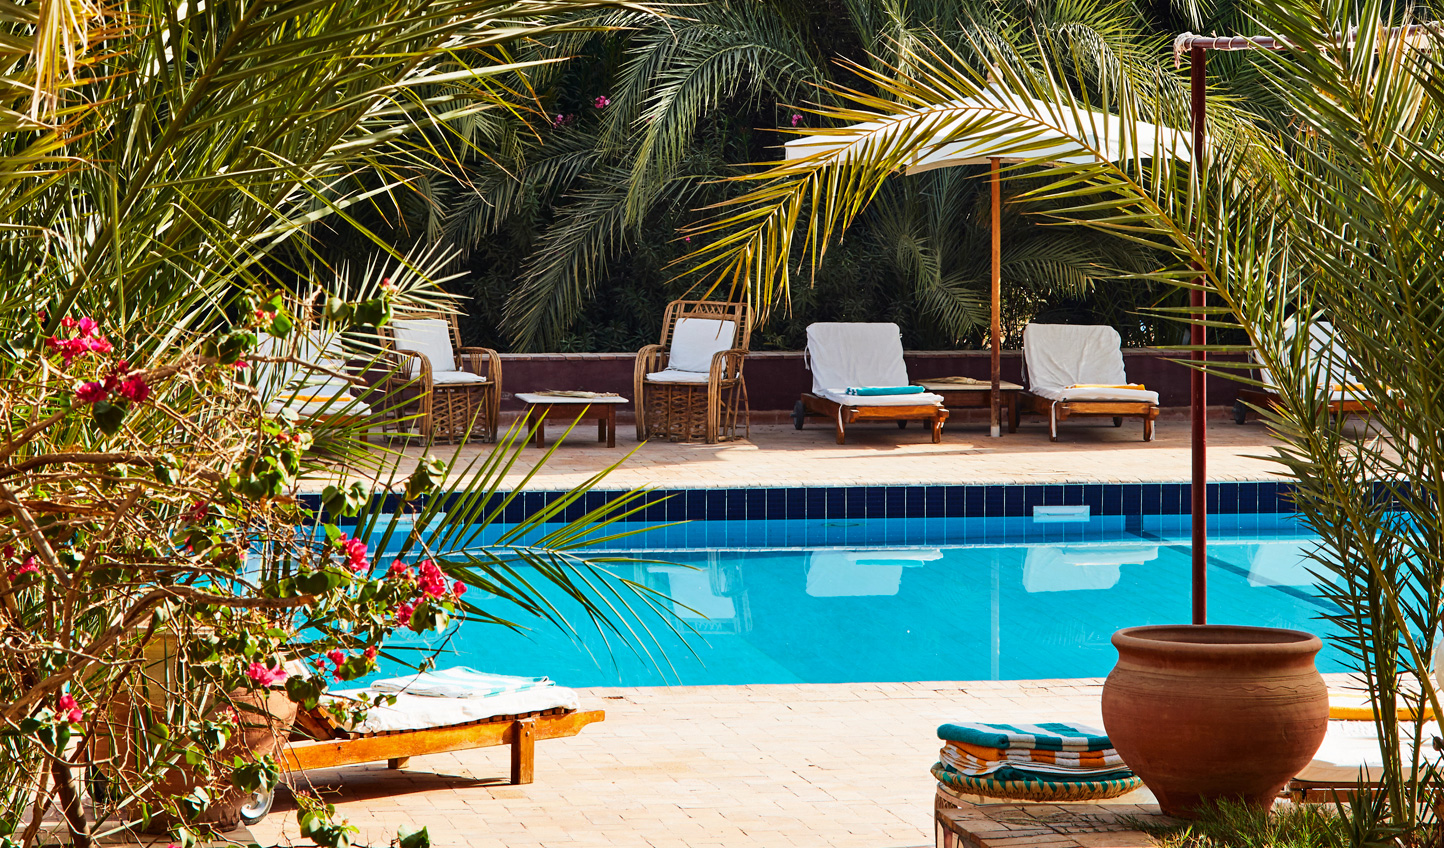 Escape the heat of the sun with an afternoon by the pool